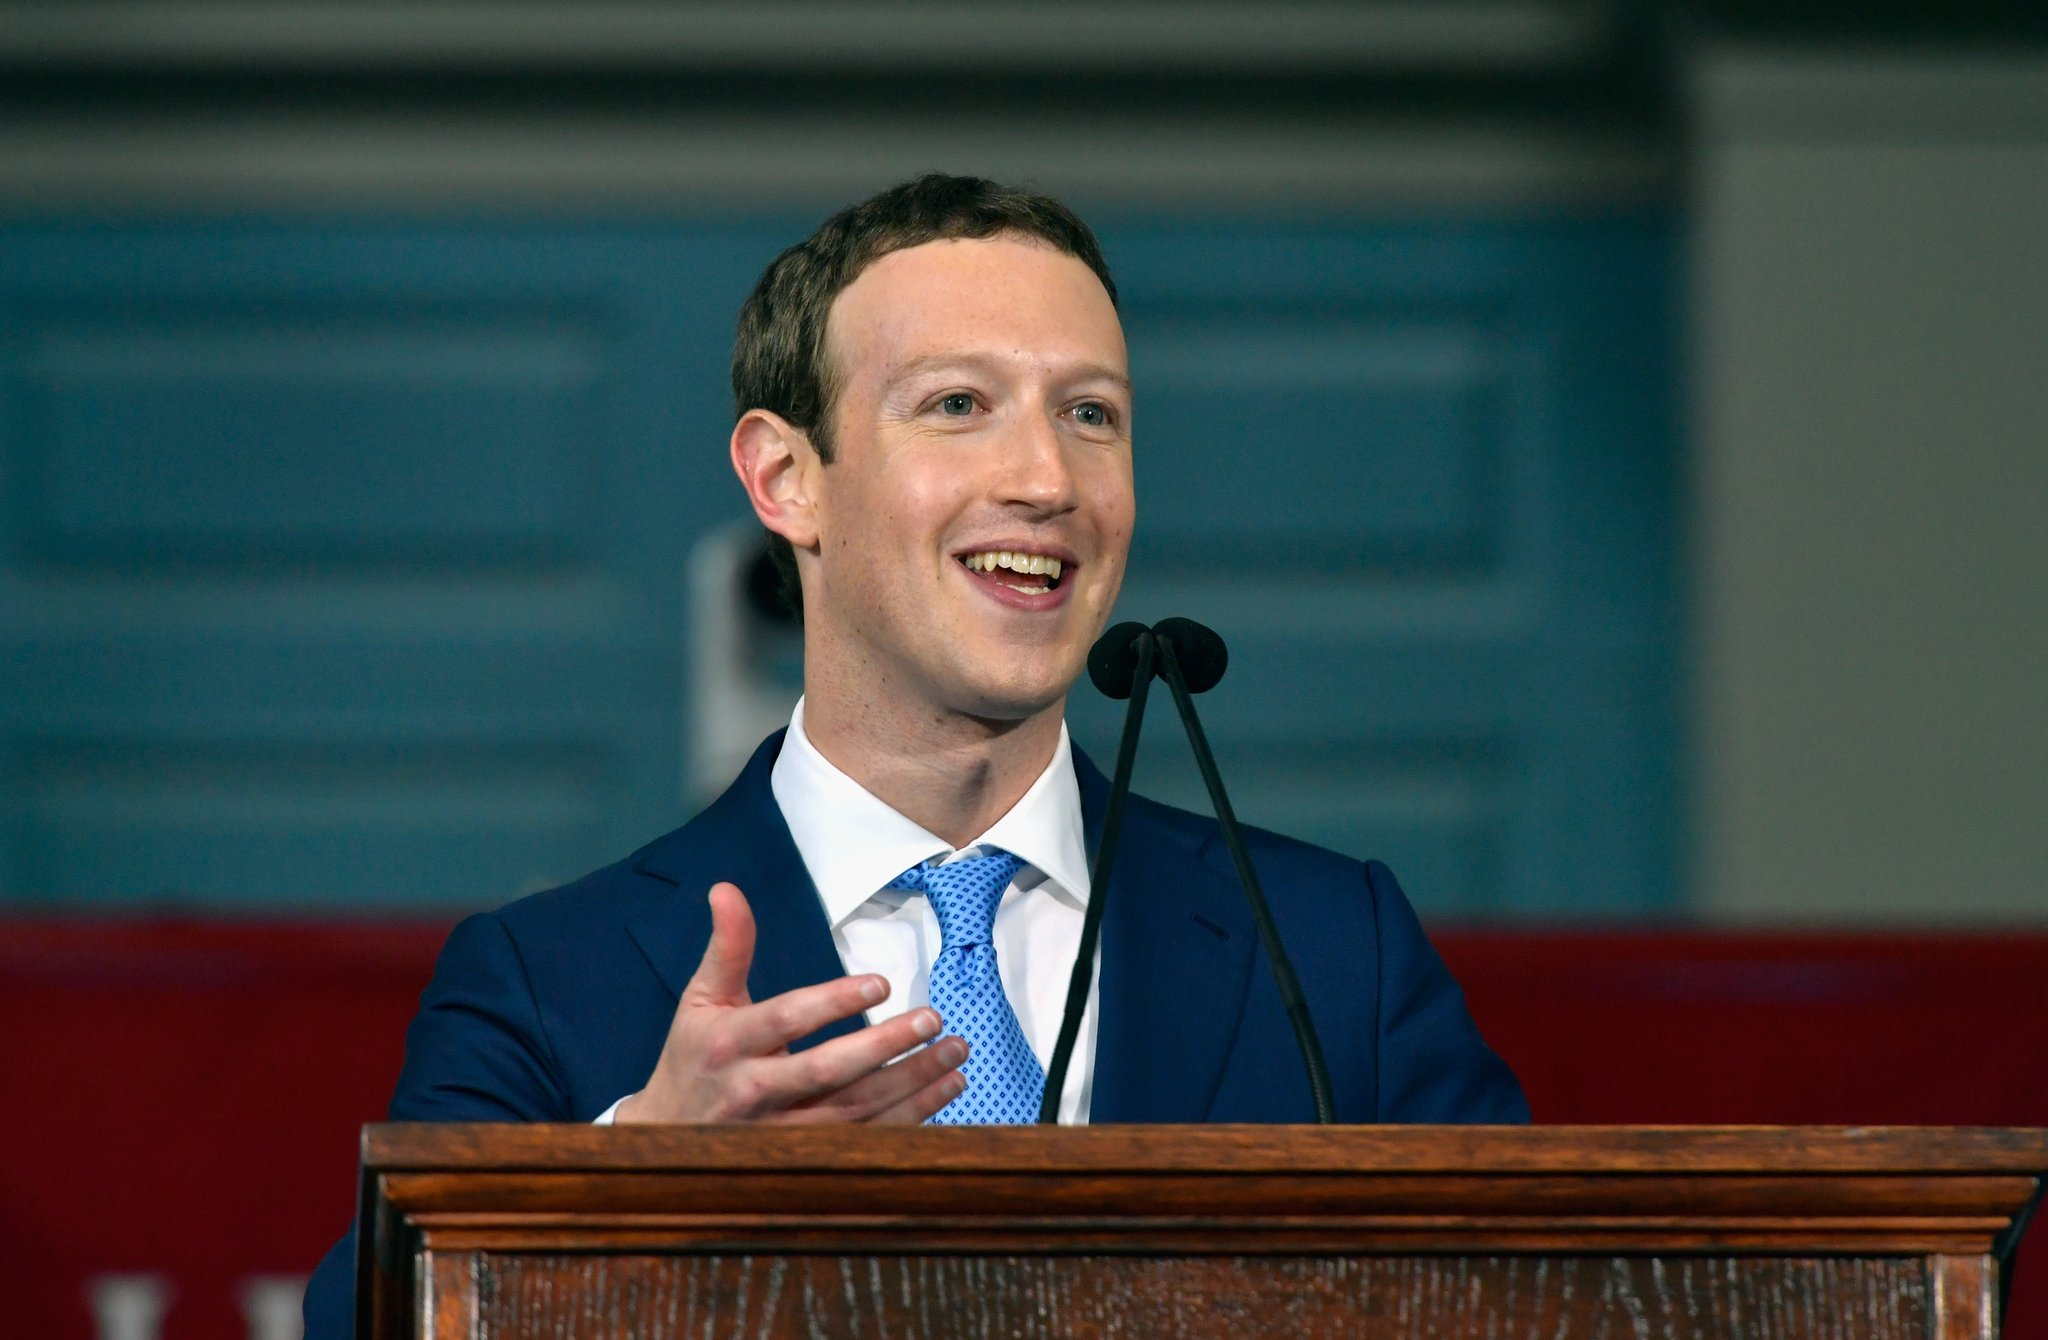 mark zuckerberg at harvard facebook time